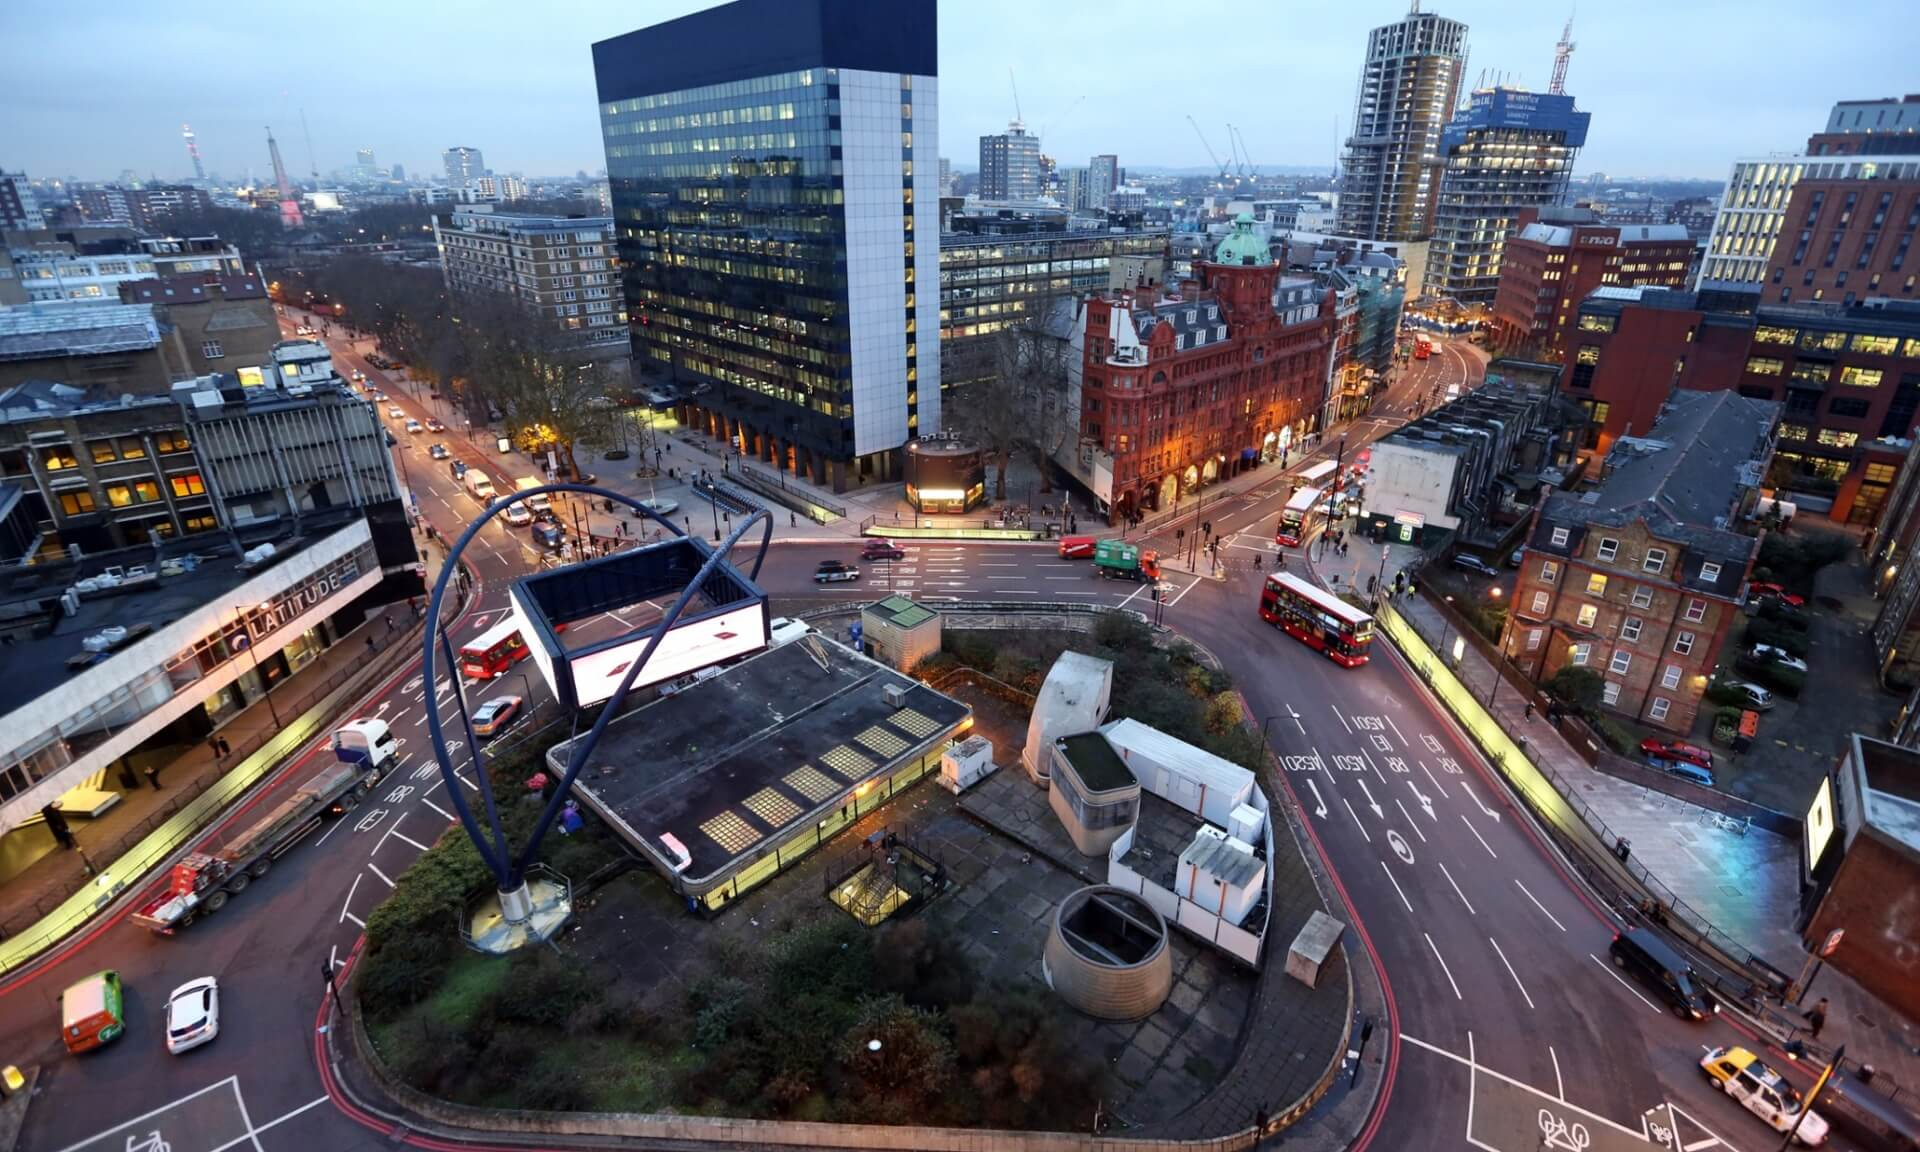 ways to find cheap office space in London